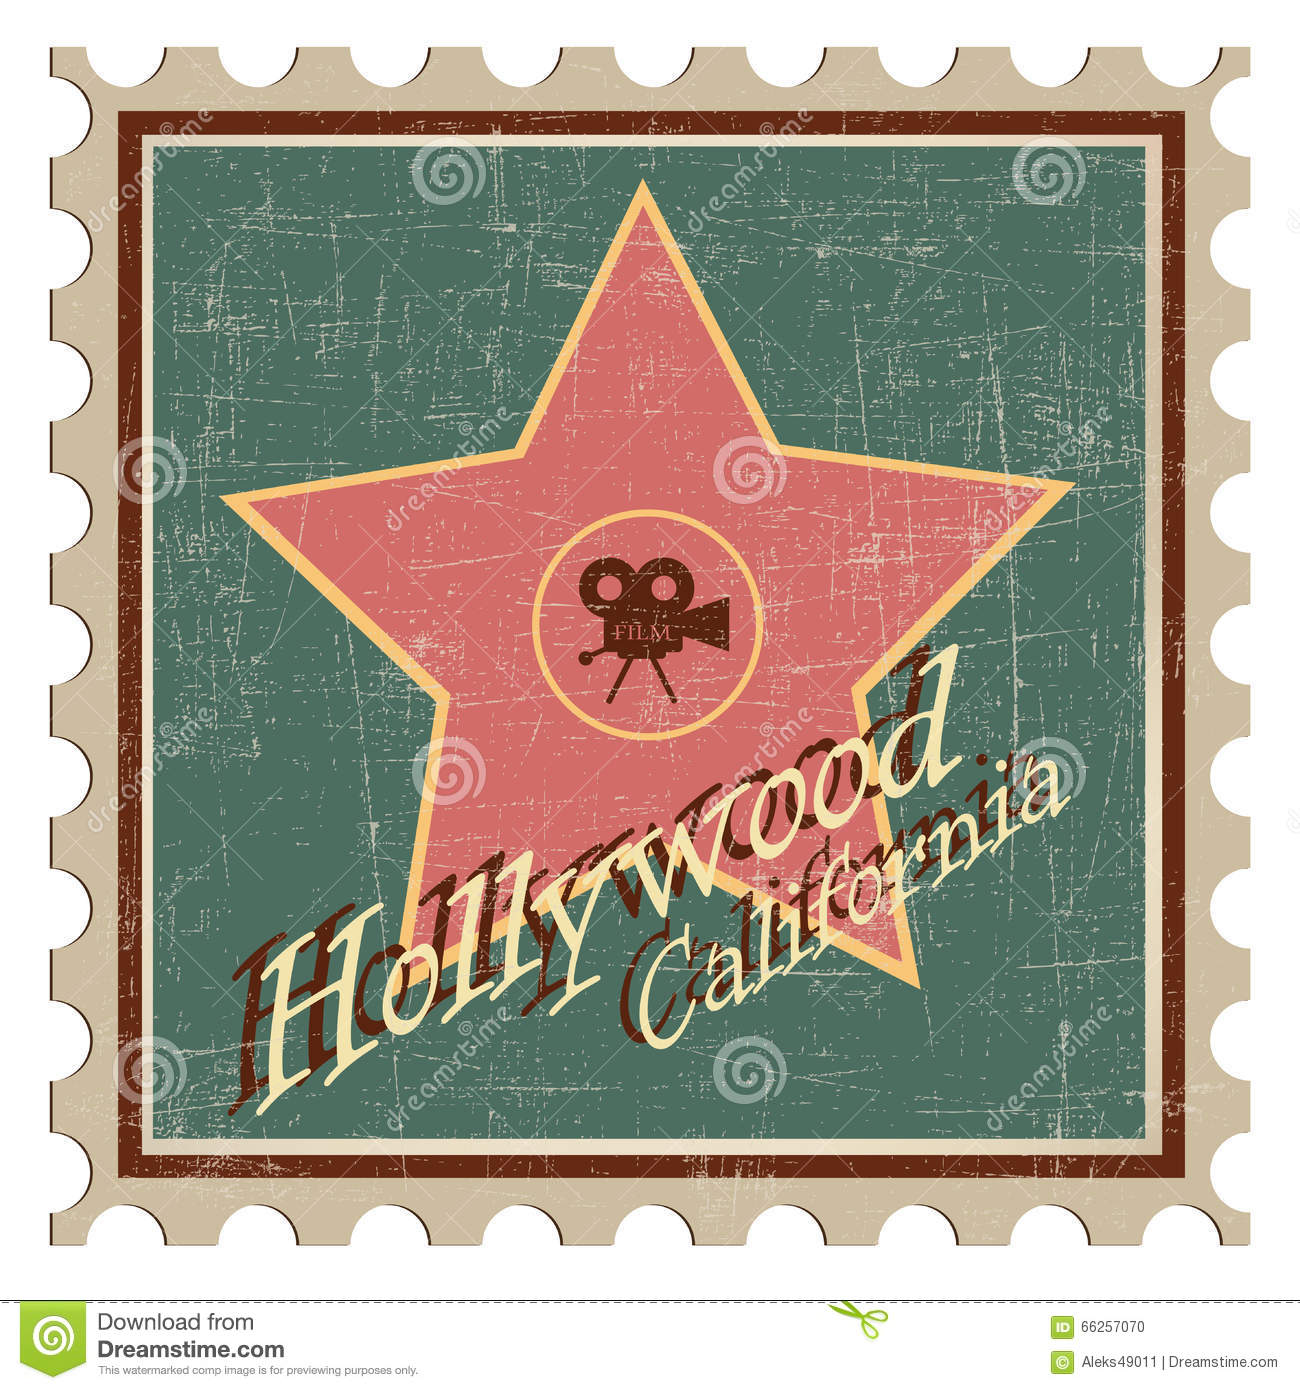 Hollywood - Kalifornien